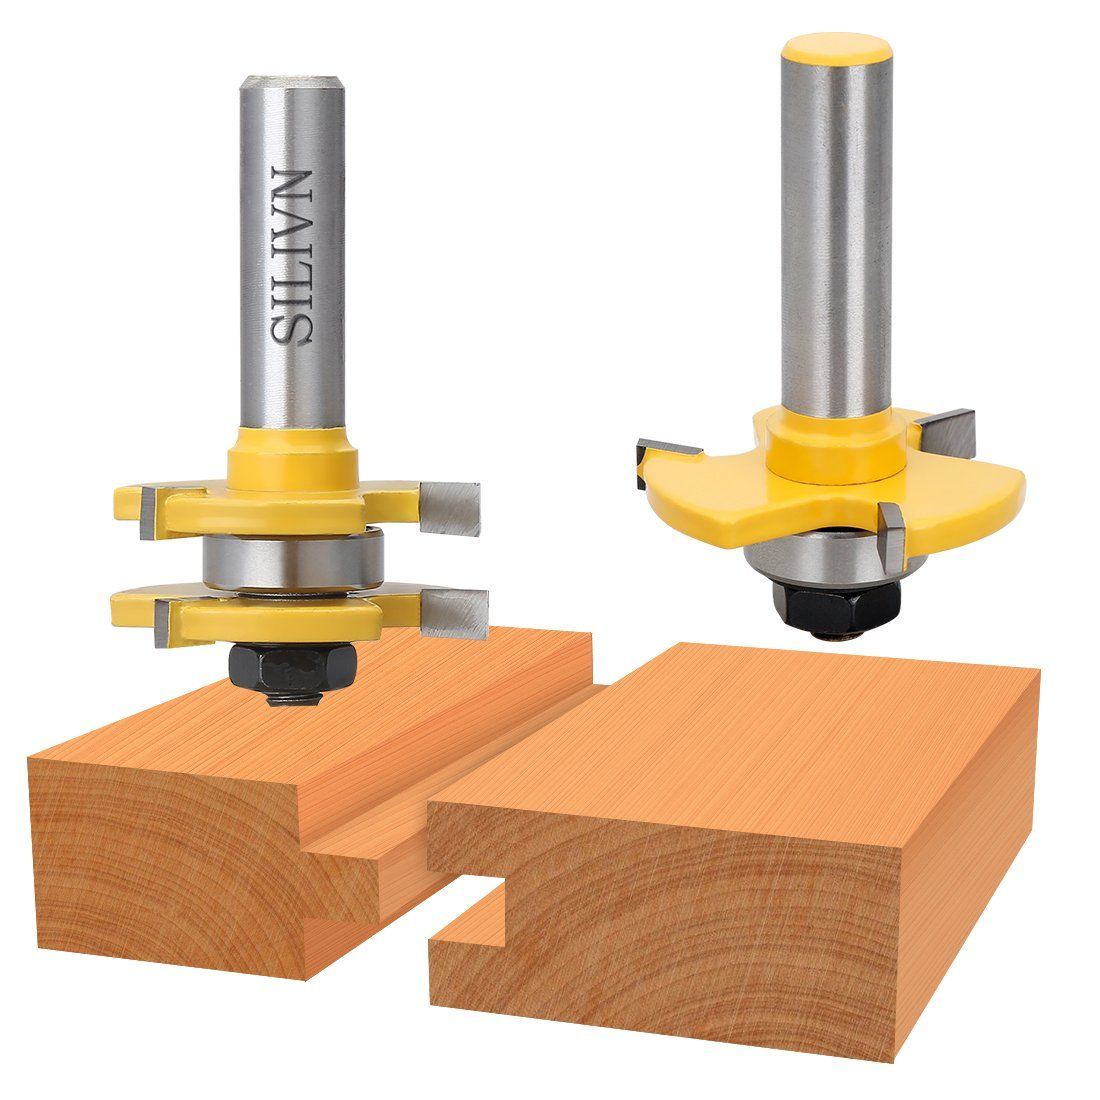 Silivn Tongue And Groove Set Router Bit Set Wood Door Flooring 3 Teeth Adjustable 1 2 Inch Shank T Shape Wood Milling Cu Woodworking Tools Router Bit Set Tools